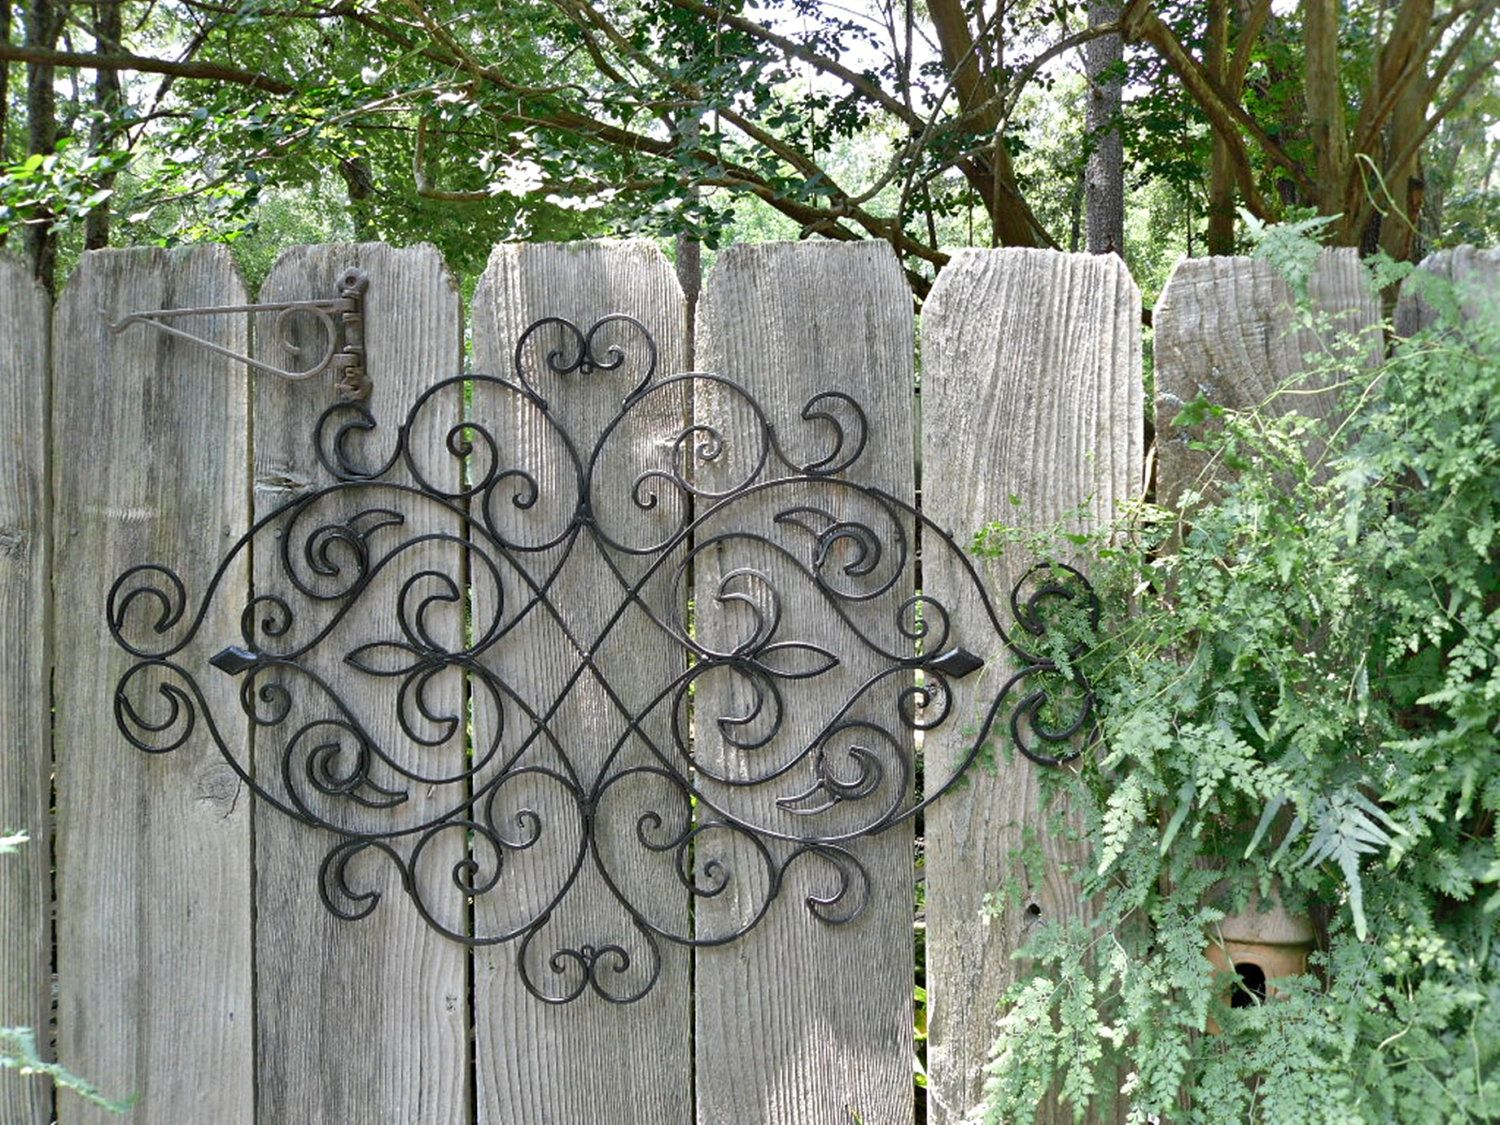 Outdoor Iron Wall Decor Google Image Result For Httpimg3.etsystatic00005989046